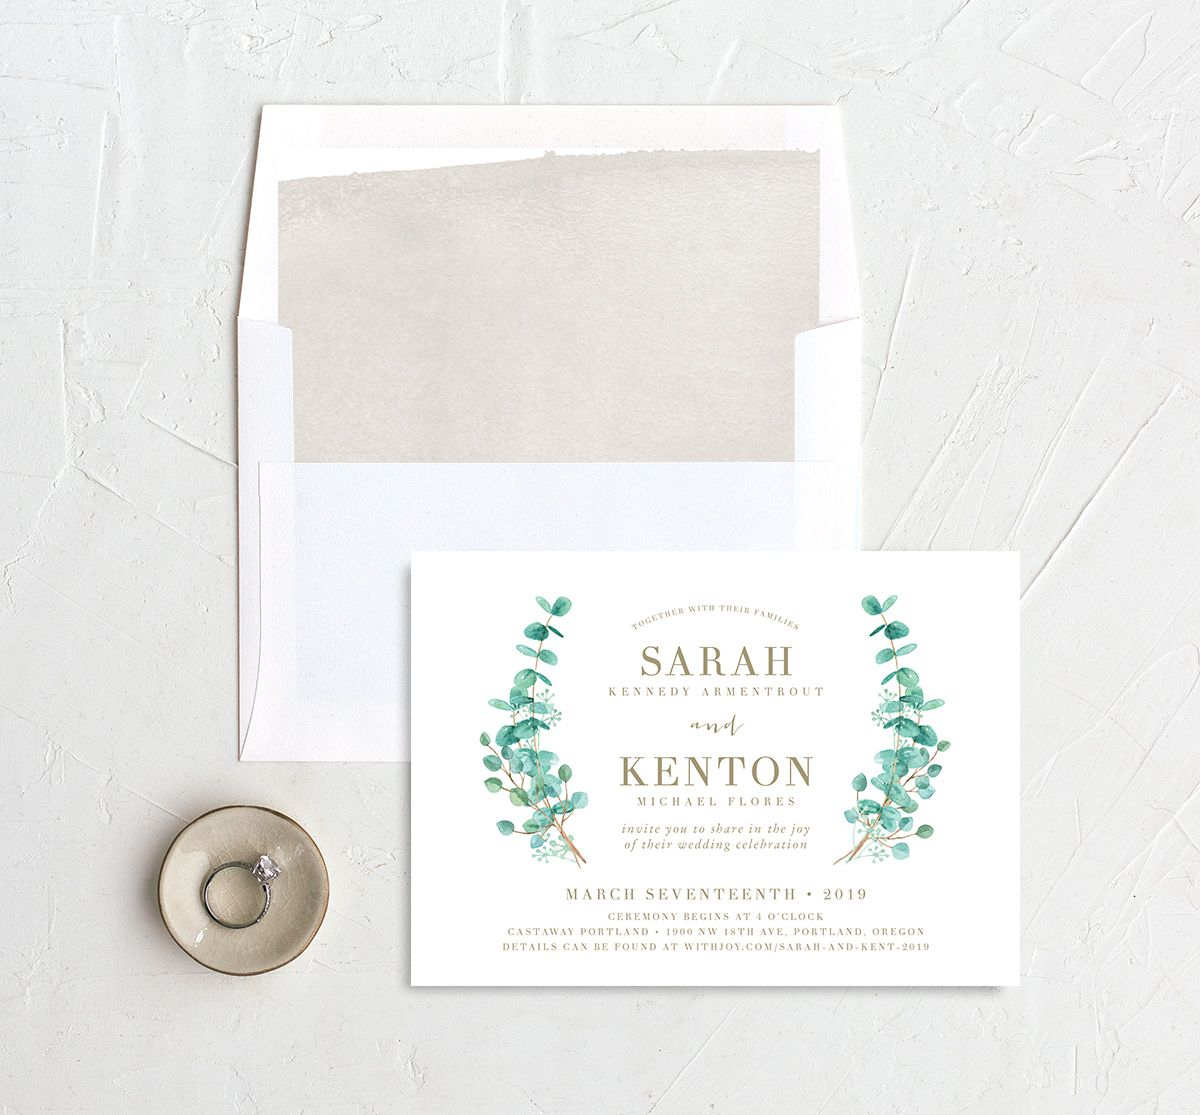 Elegant Eucalyptus Wedding Invitation with liner